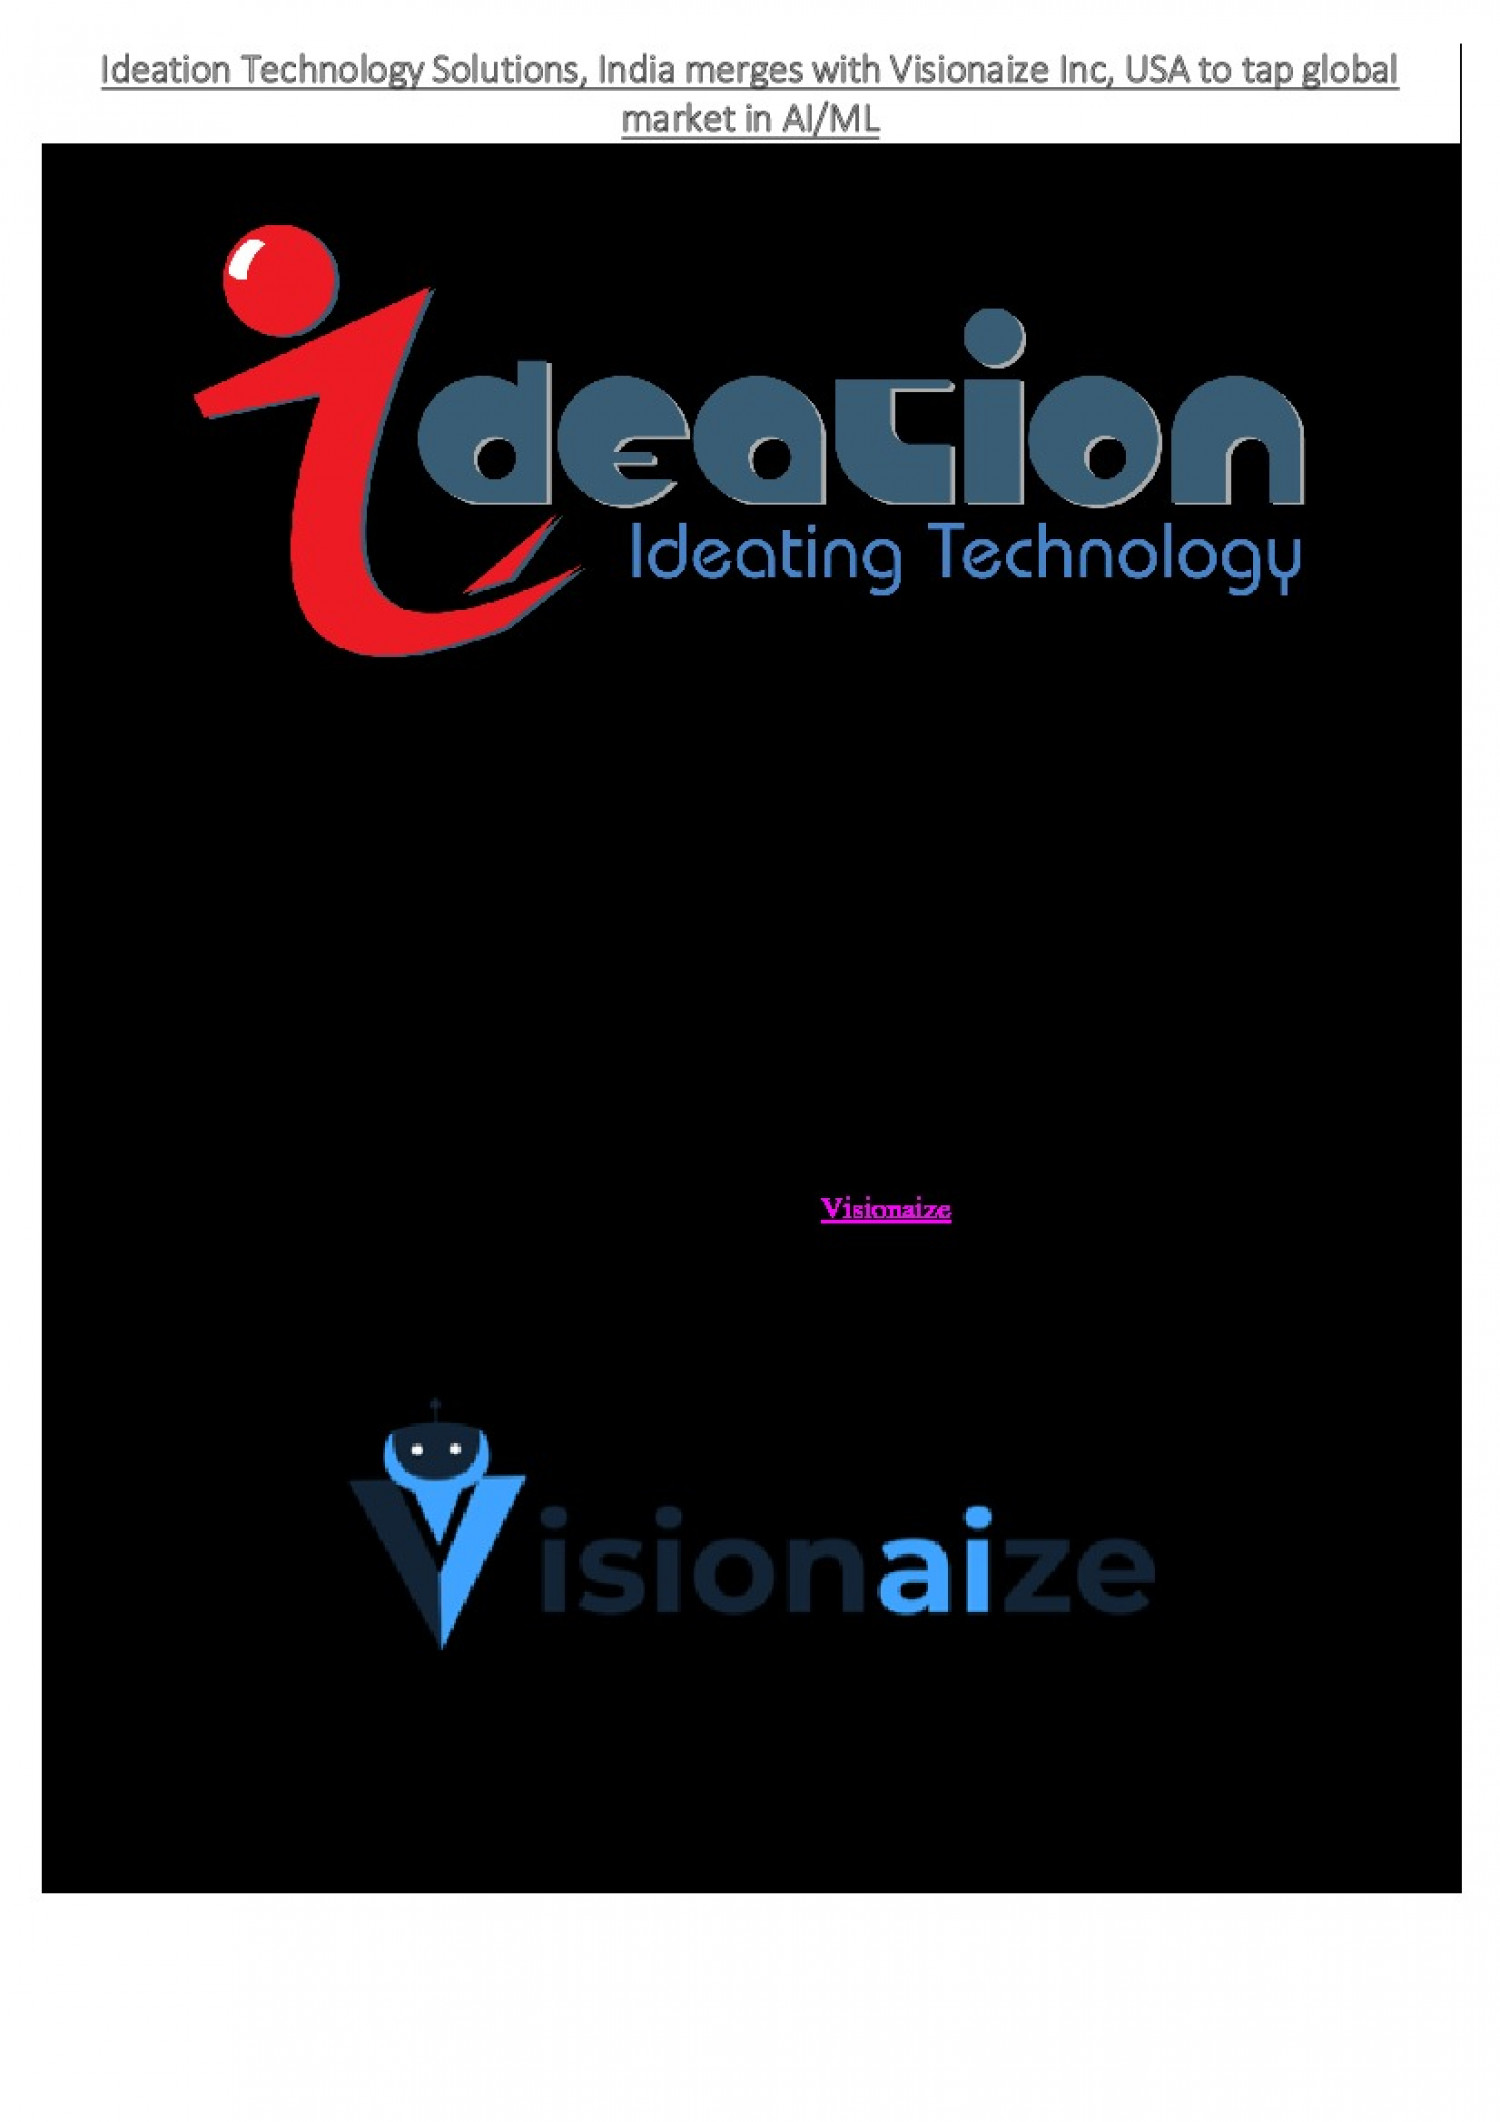 Ideation Technology Solutions, India merges with Visionaize Inc, USA to tap global market in AI/ML Infographic